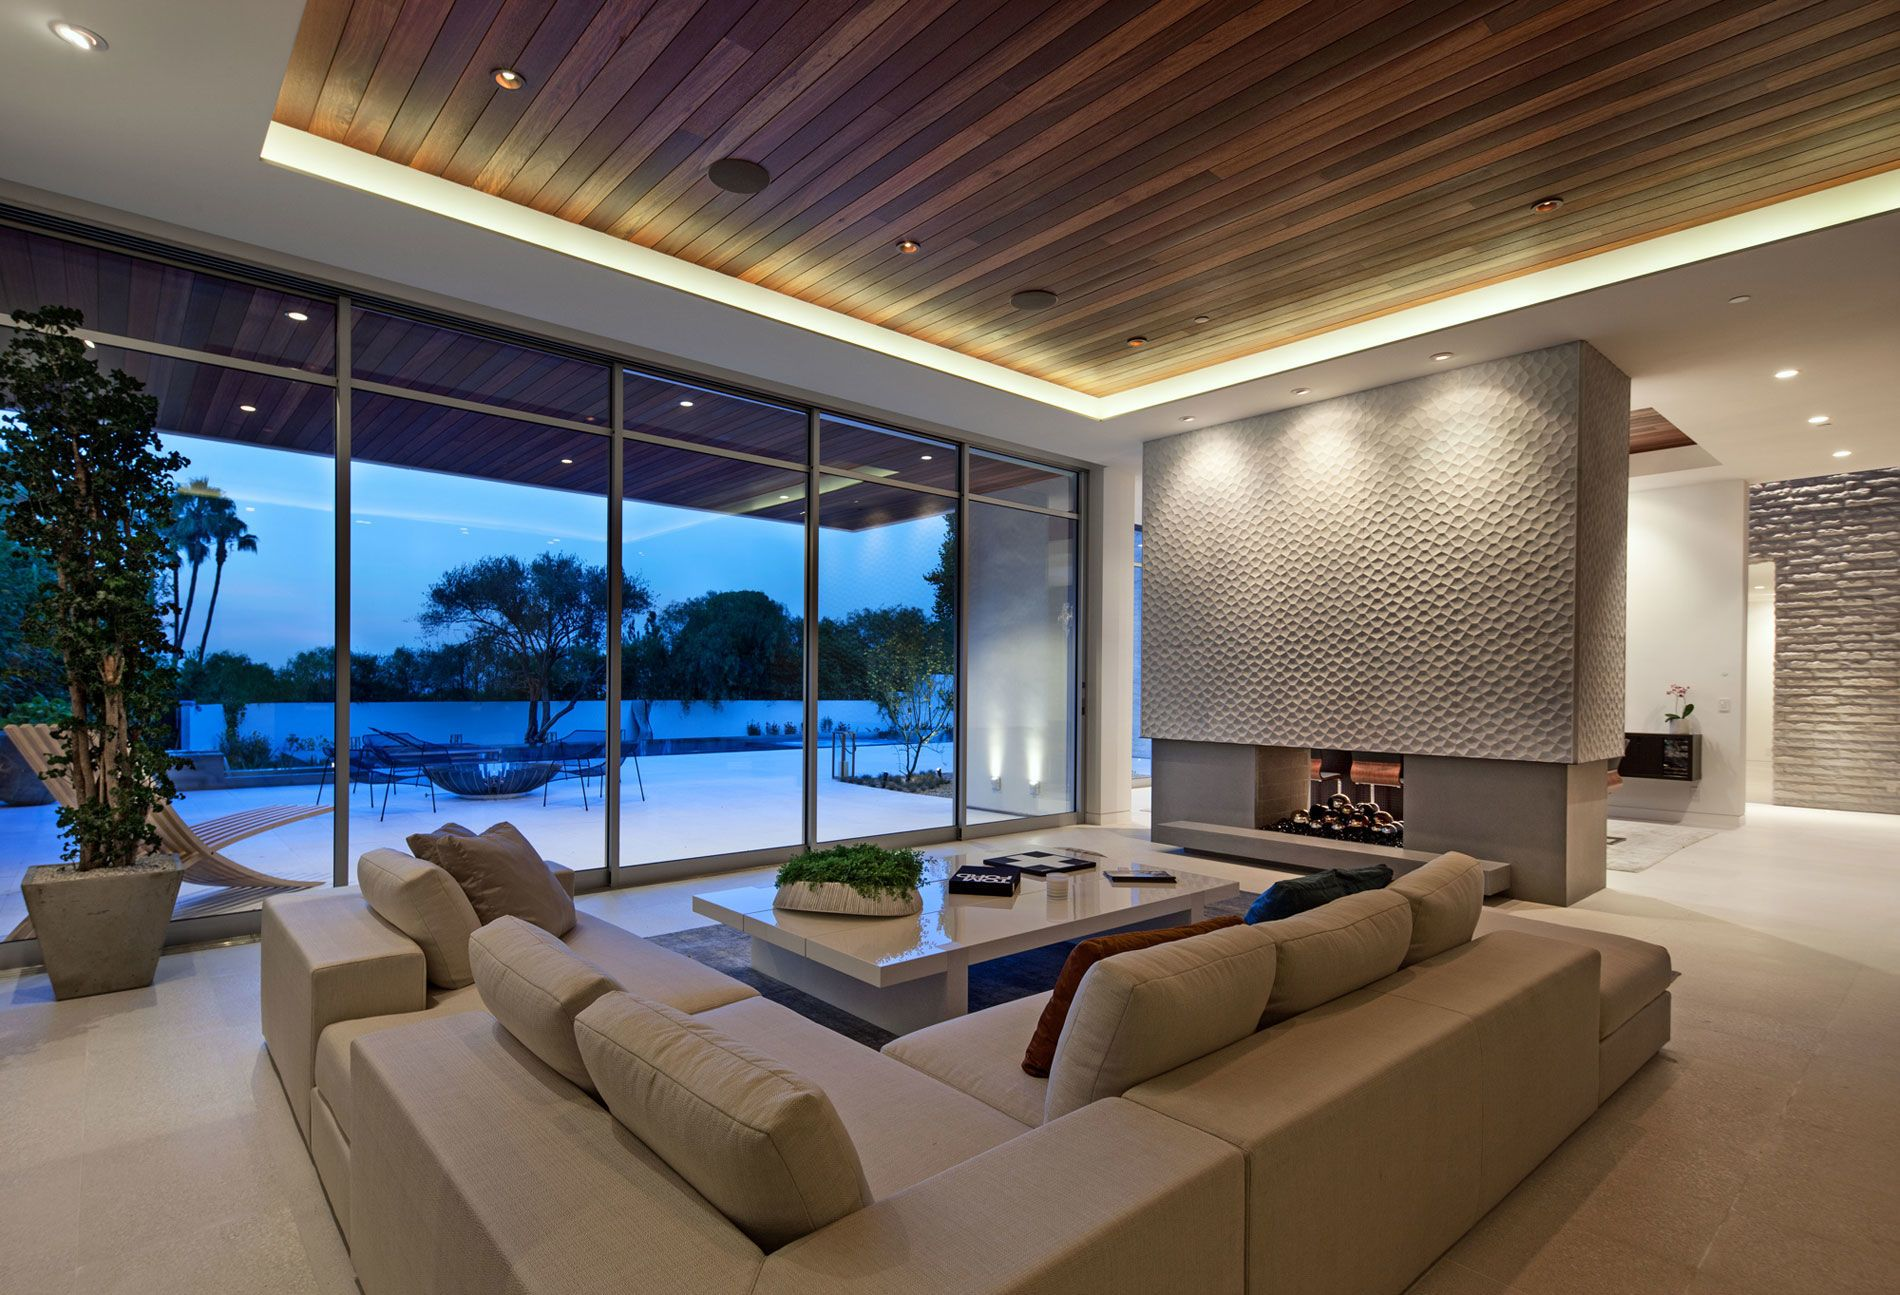 13,000 Square Foot Residence on Sunset Strip - UltraLinx